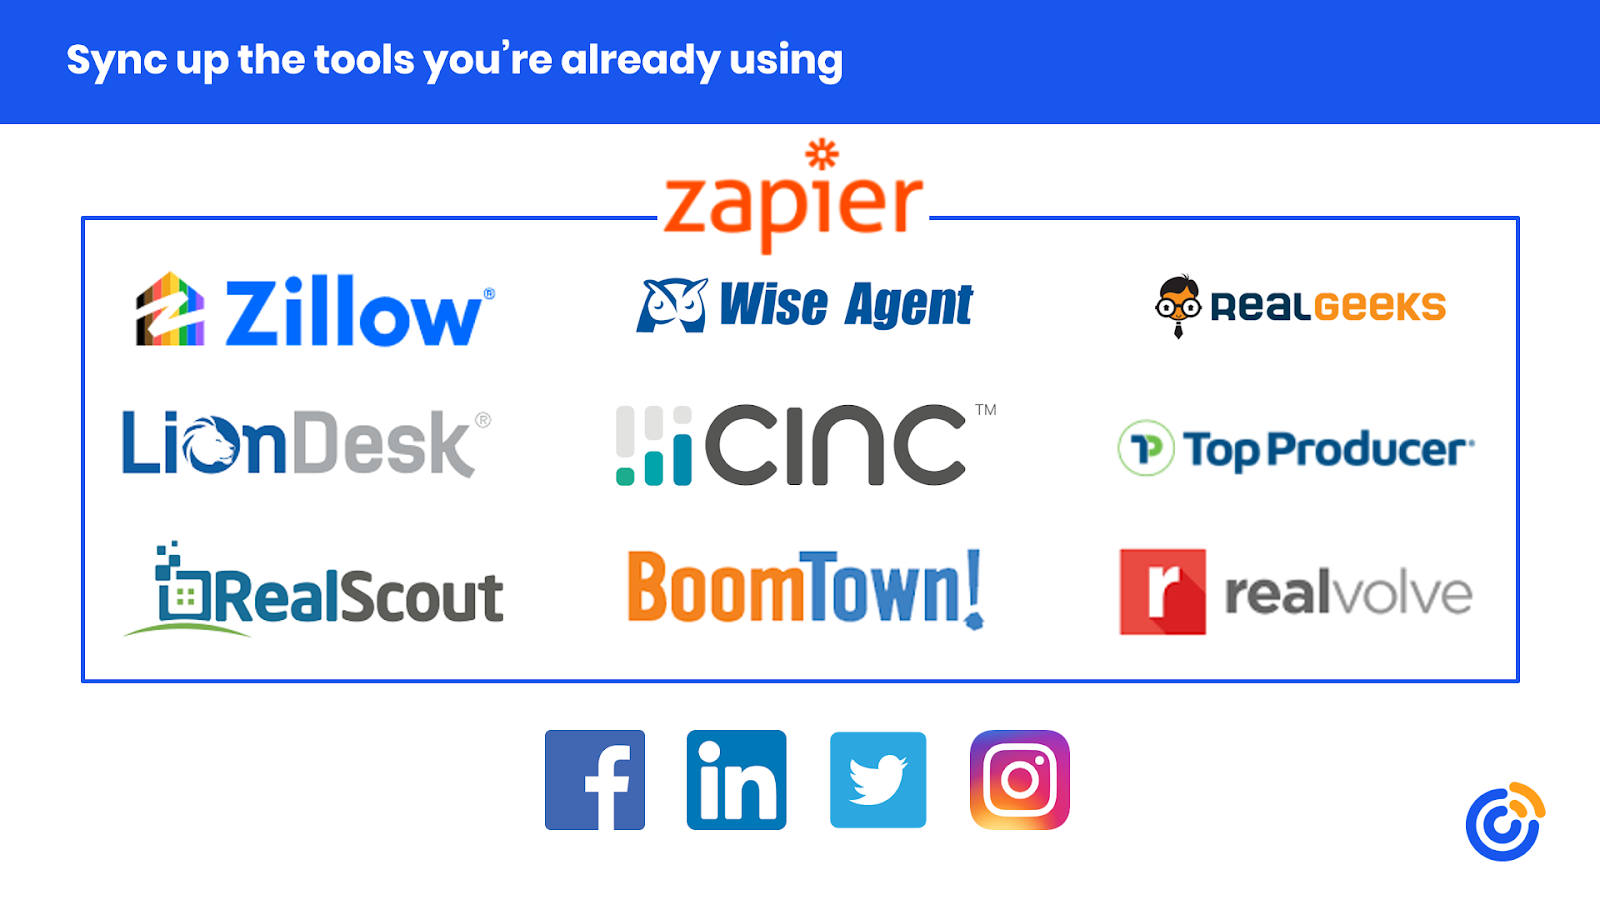 Real estate tools that sync with Constant Contact